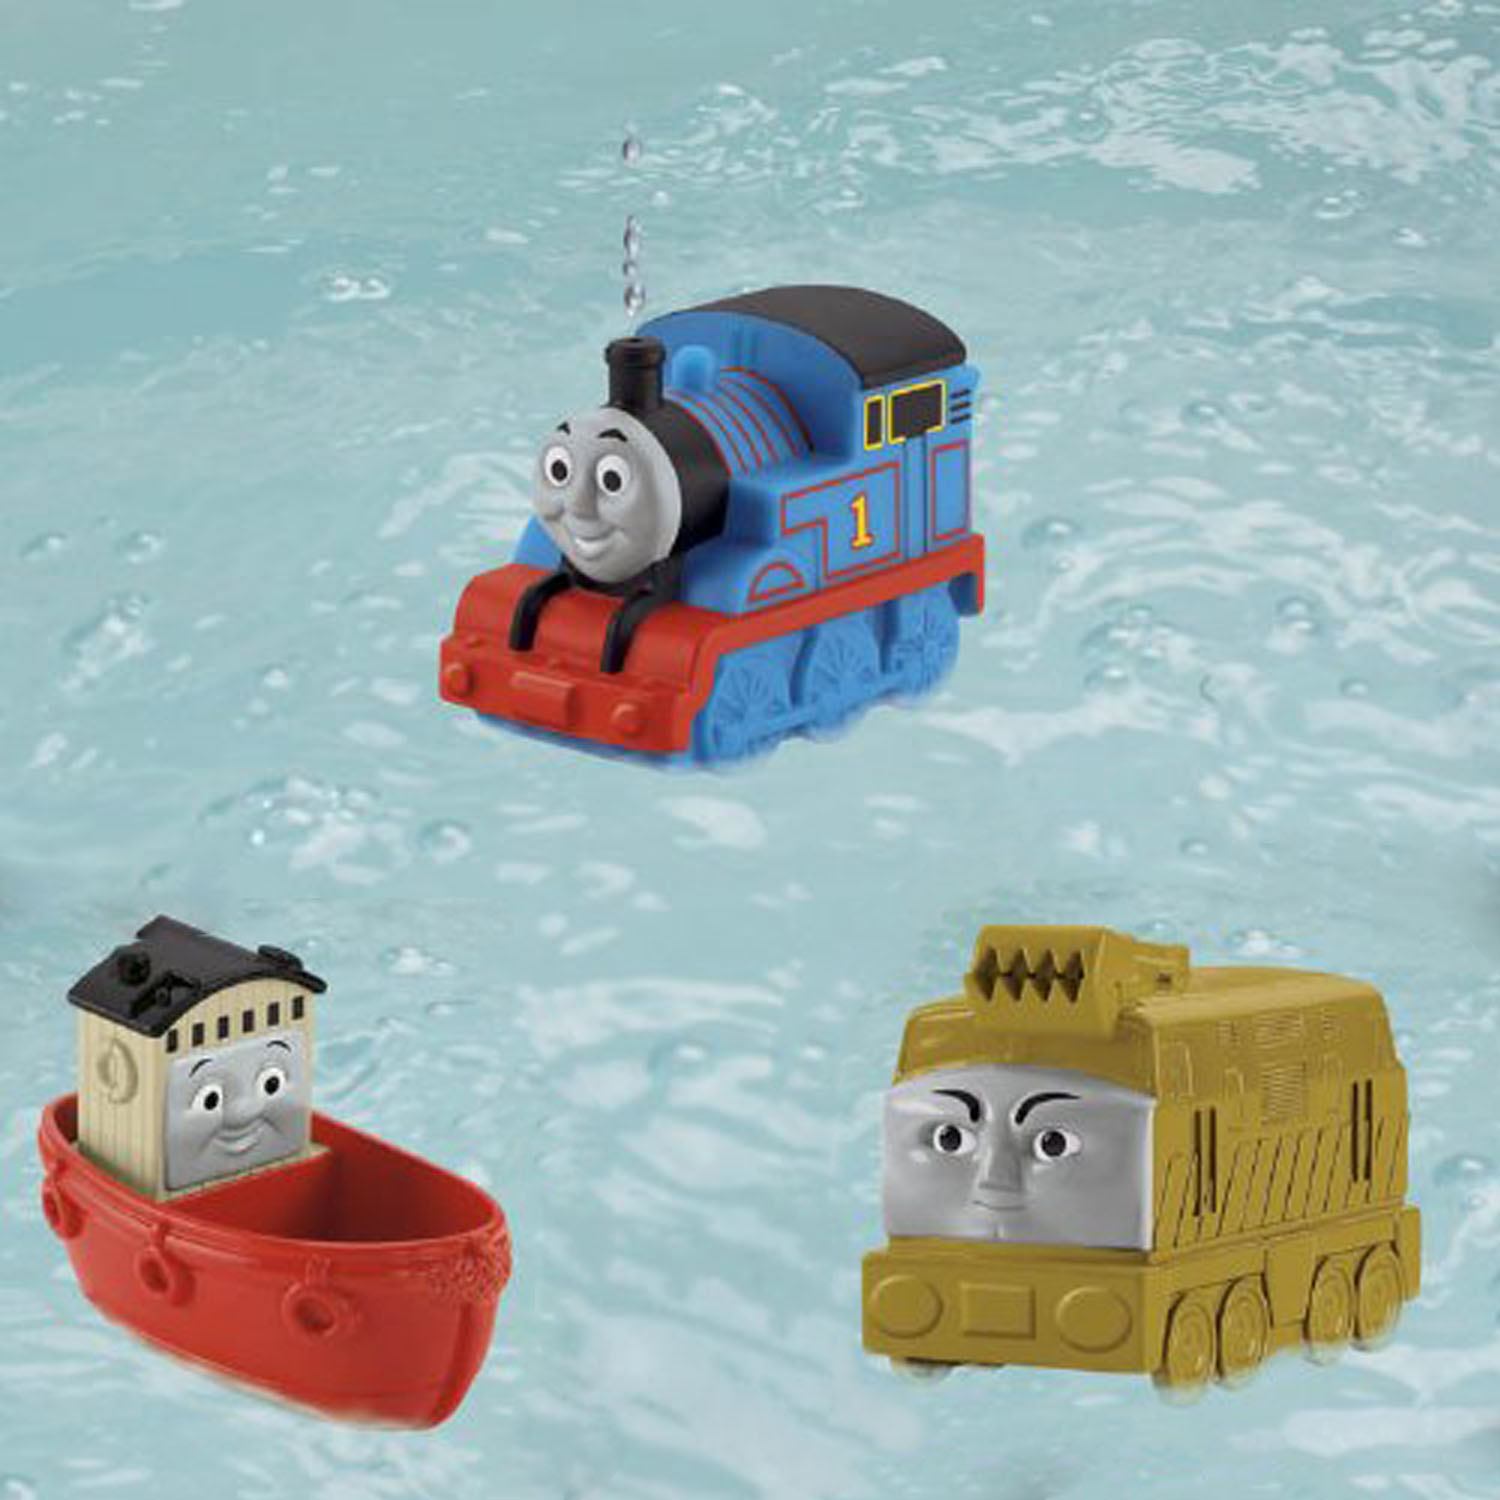 Thomas the Train Toys - Bathtub Buddies 3-Pack at ToyStop